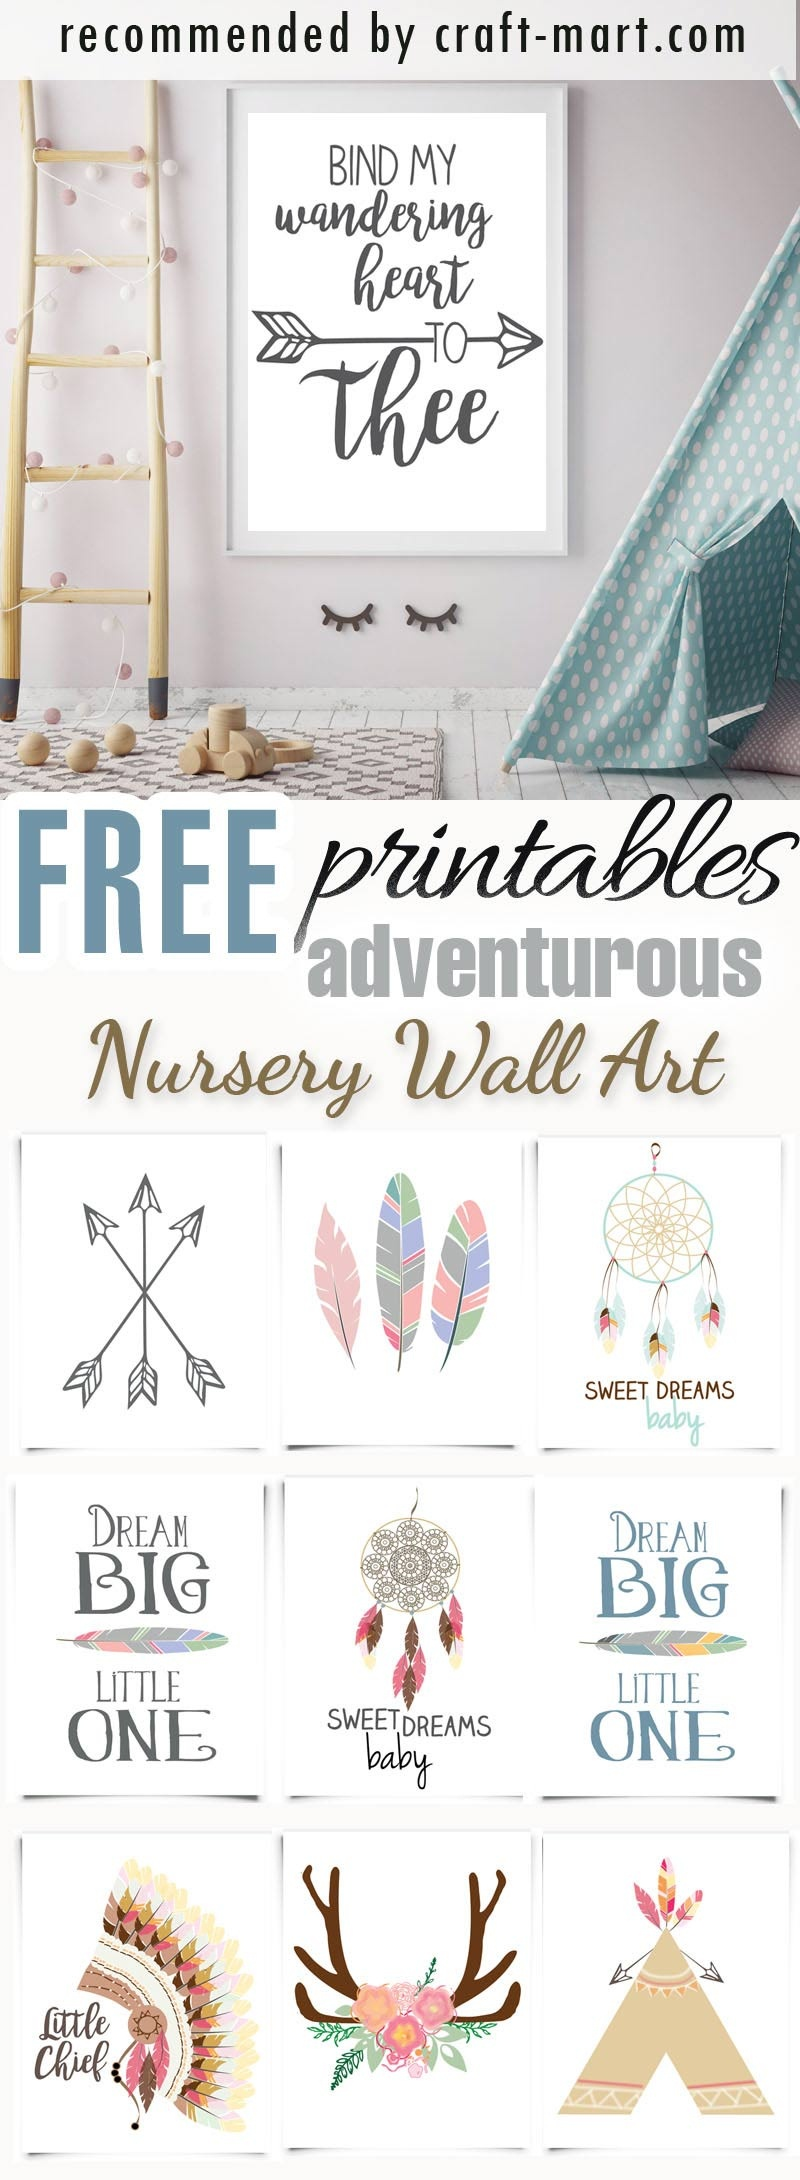 100+ Best Free Nursery Printables And Wall Art - Craft-Mart - Free Nursery Printables